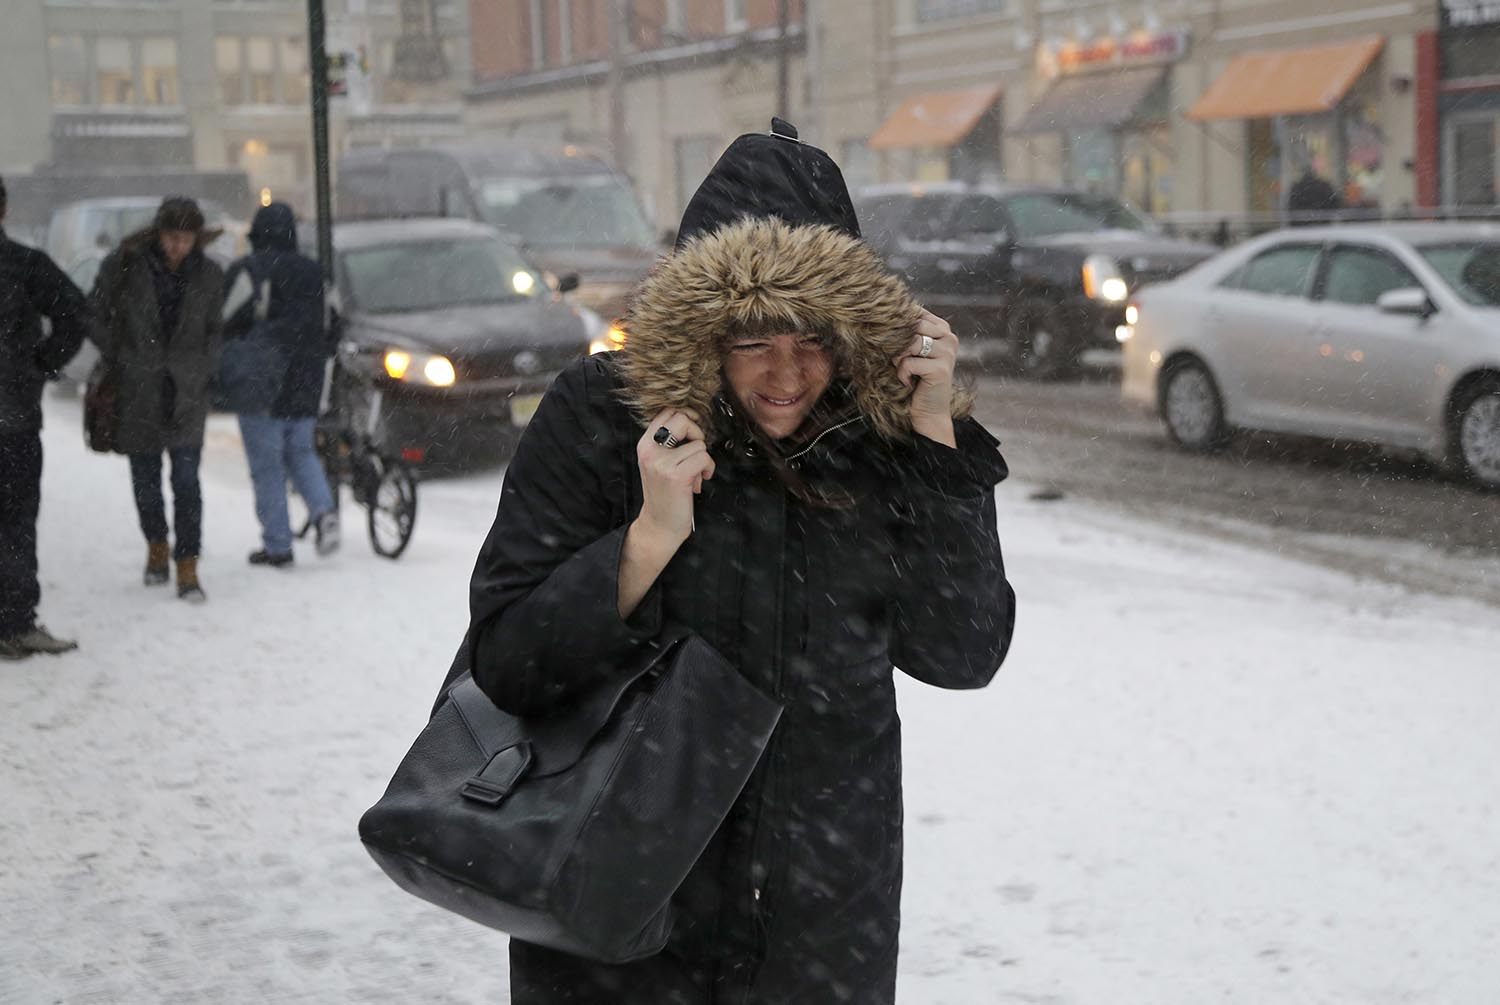 <div class='meta'><div class='origin-logo' data-origin='AP'></div><span class='caption-text' data-credit='AP Photo/Seth Wenig'>A woman walks through the snow and wind as she makes her way to the train station in Hoboken, N.J., Thursday, Jan. 4, 2018.</span></div>